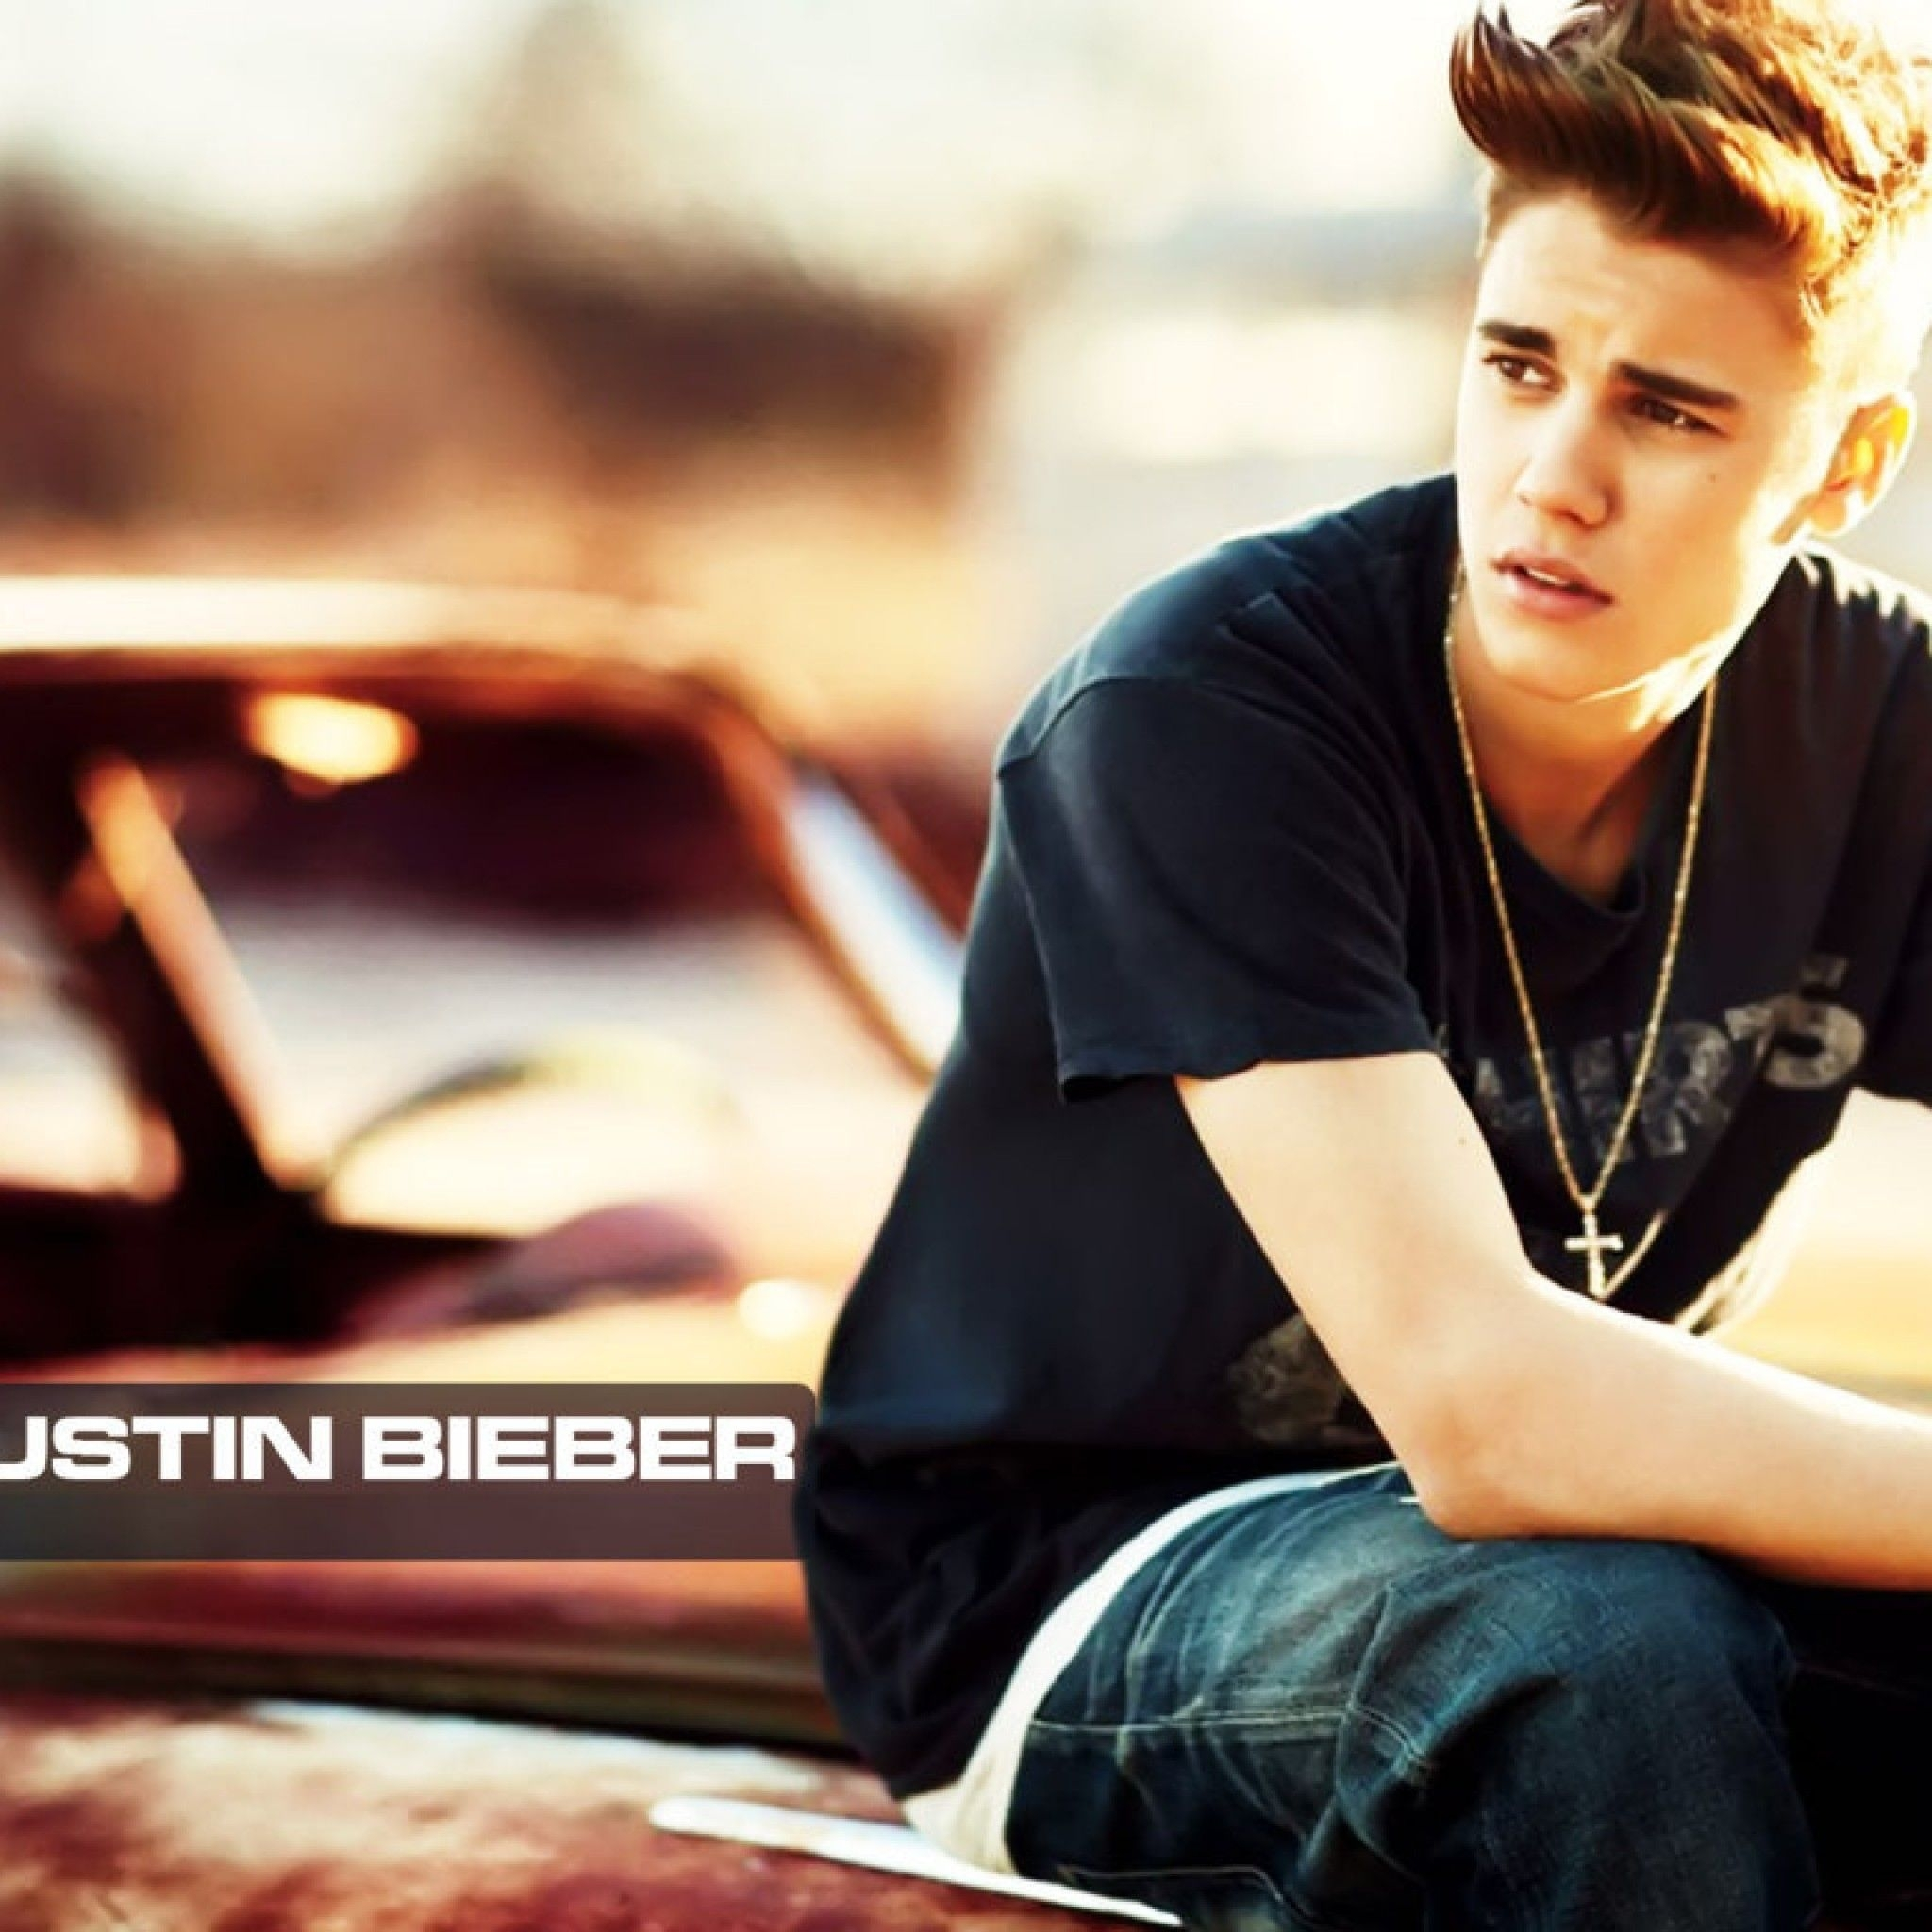 justin bieber wallpapers high resolution and quality download | hd